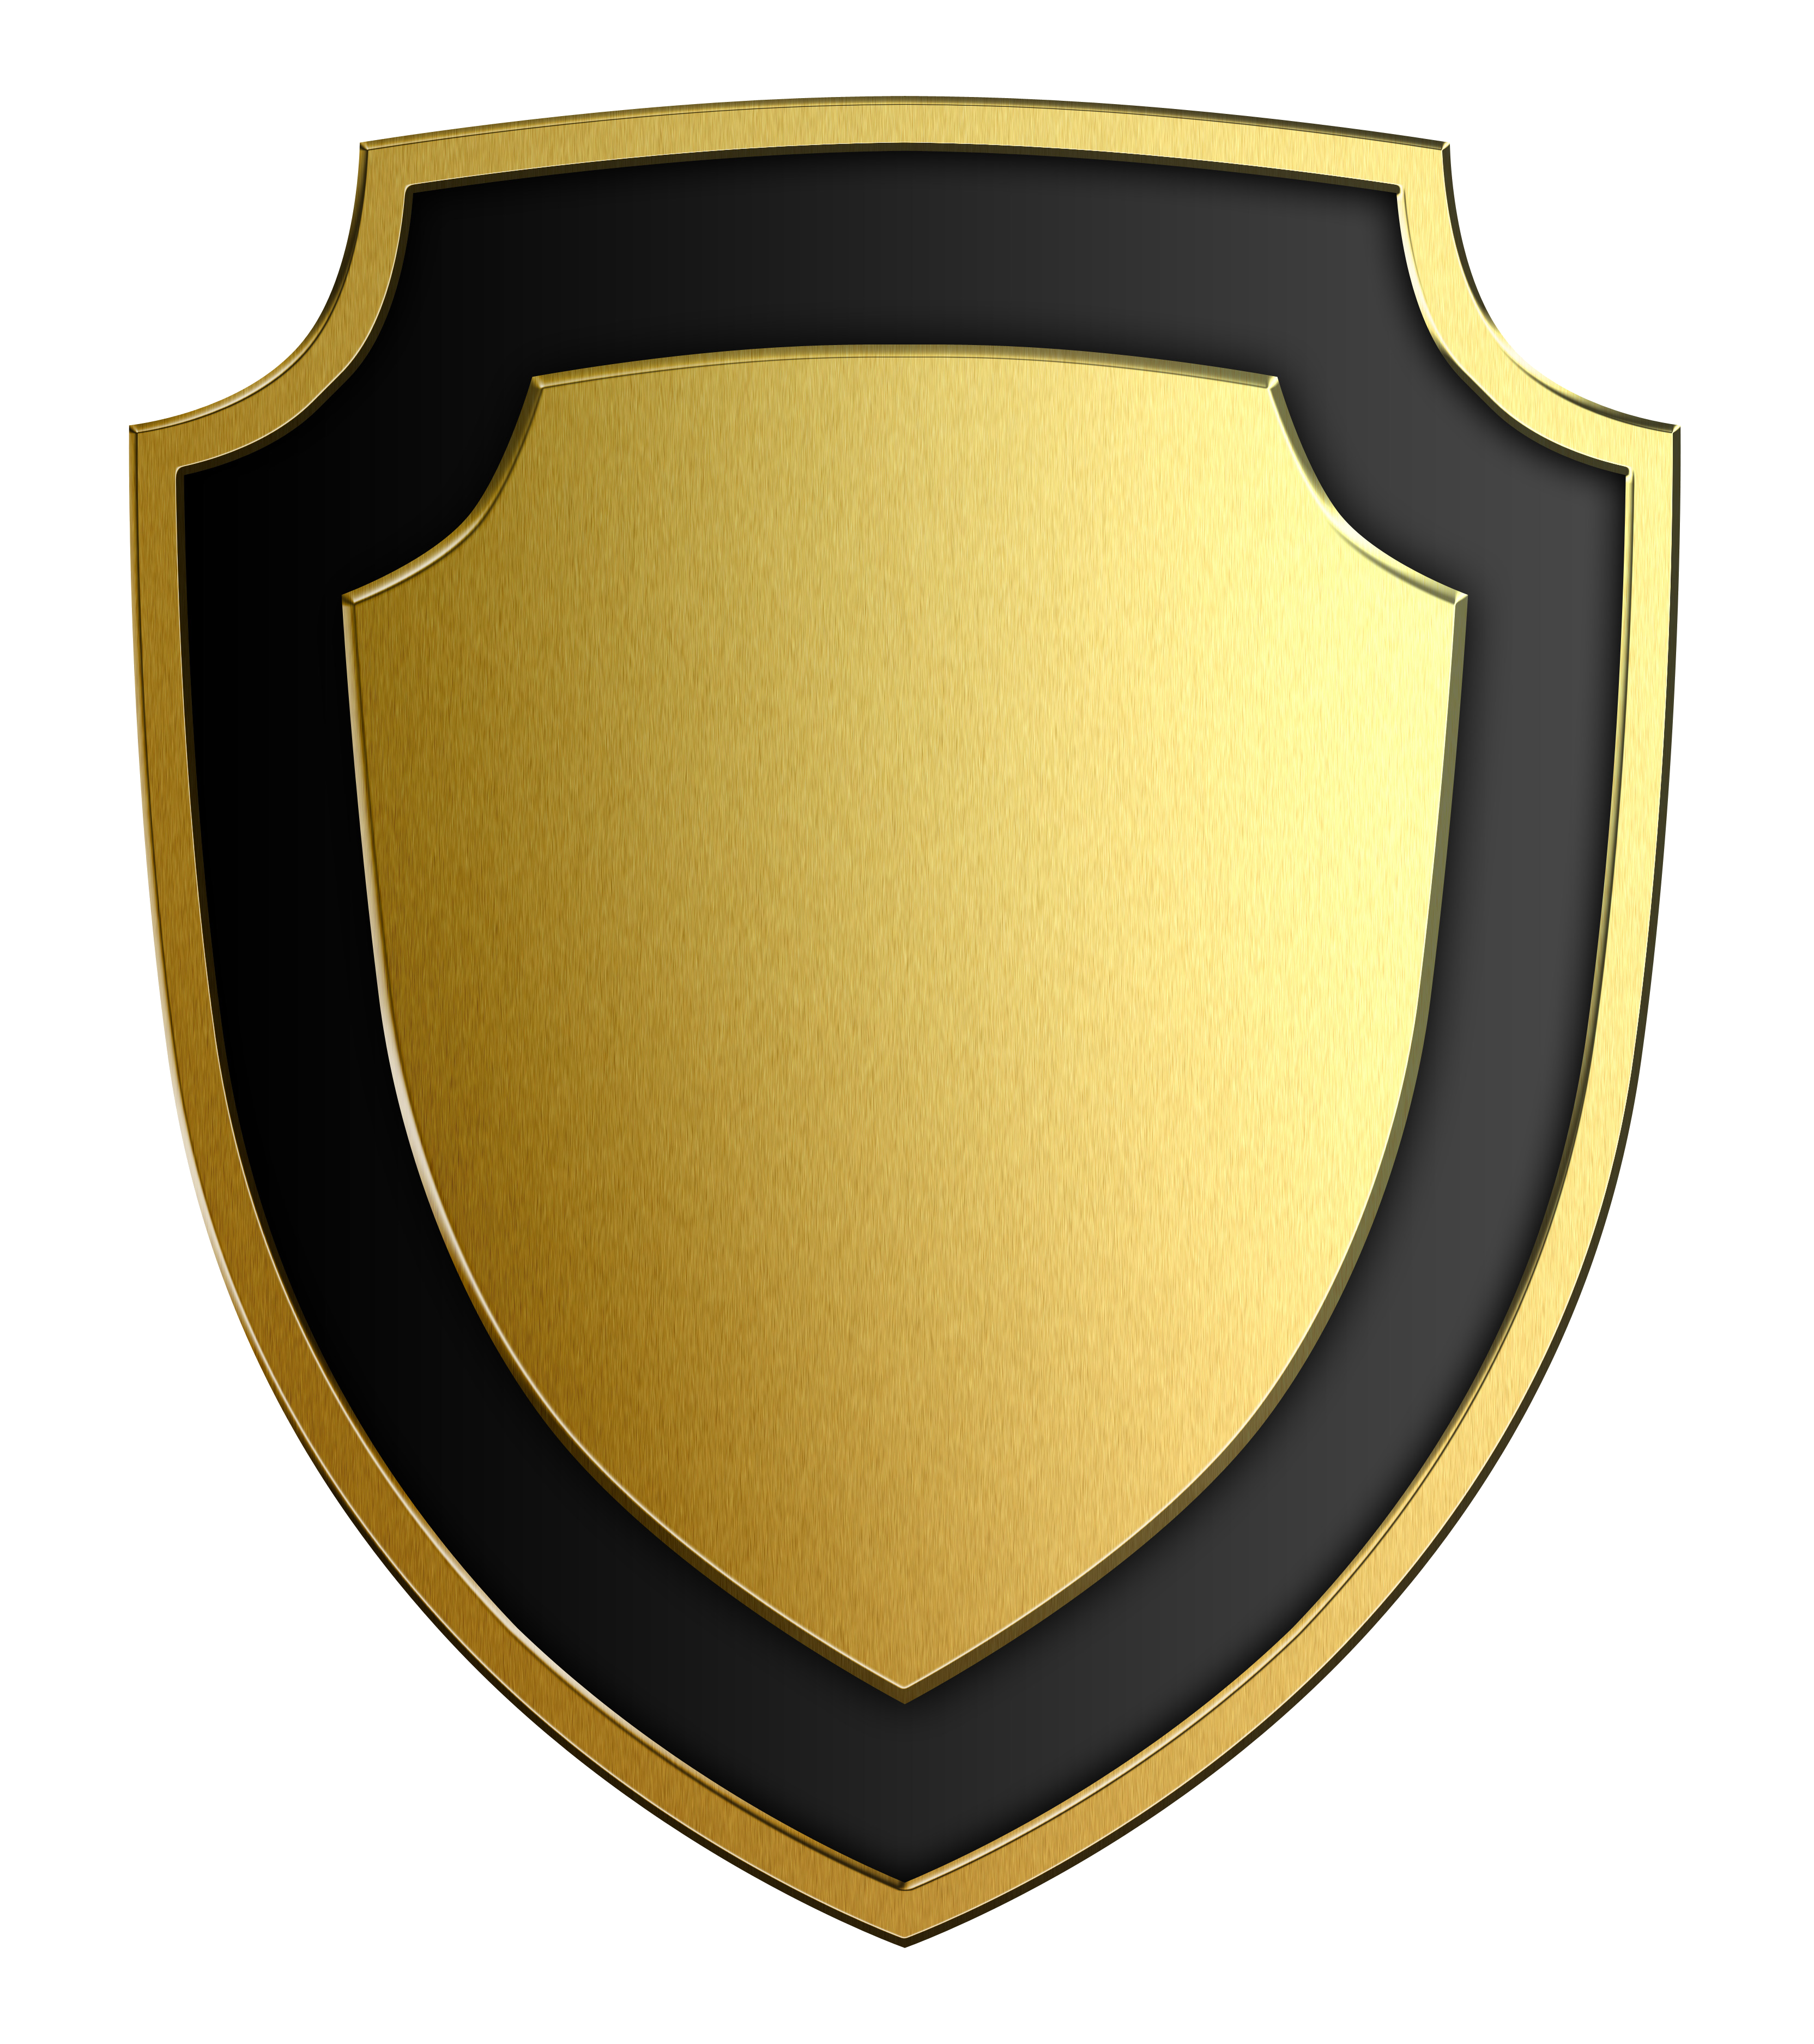 Download this high resolution Shield PNG Icon